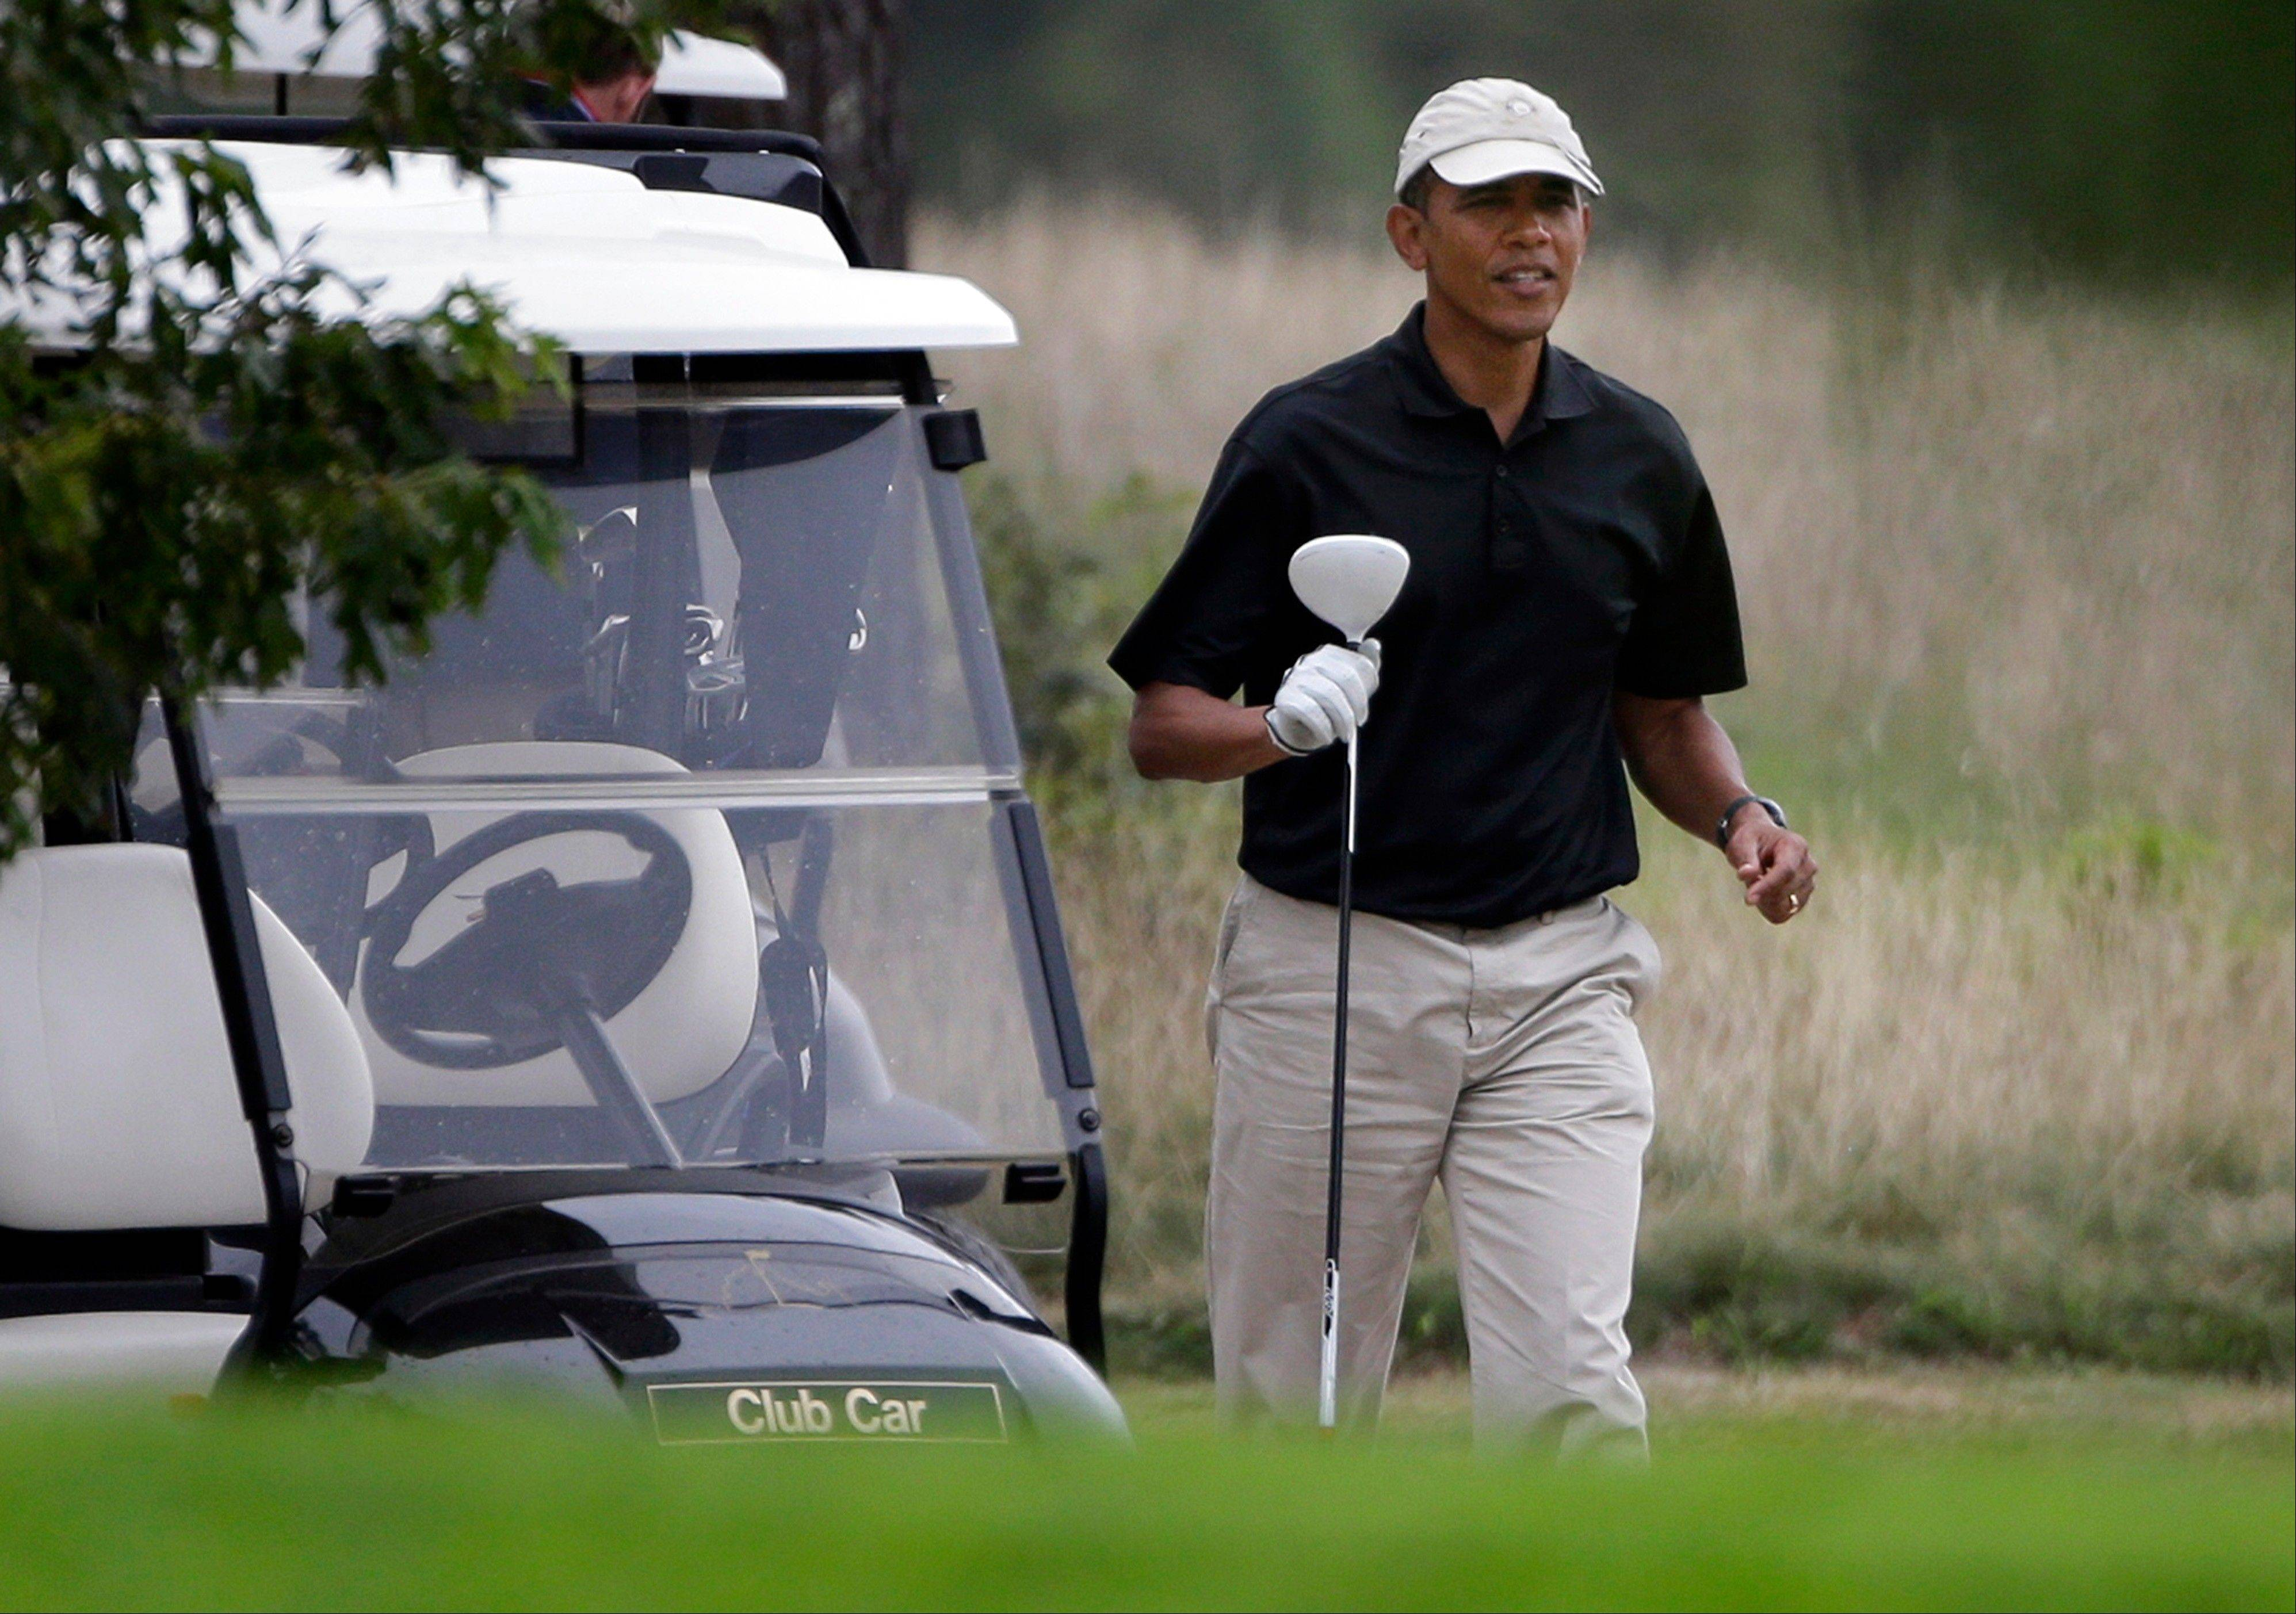 President Barack Obama prepares to tee off while golfing at Vineyard Golf Club in Edgartown, Mass., on the island of Martha's Vineyard Sunday.